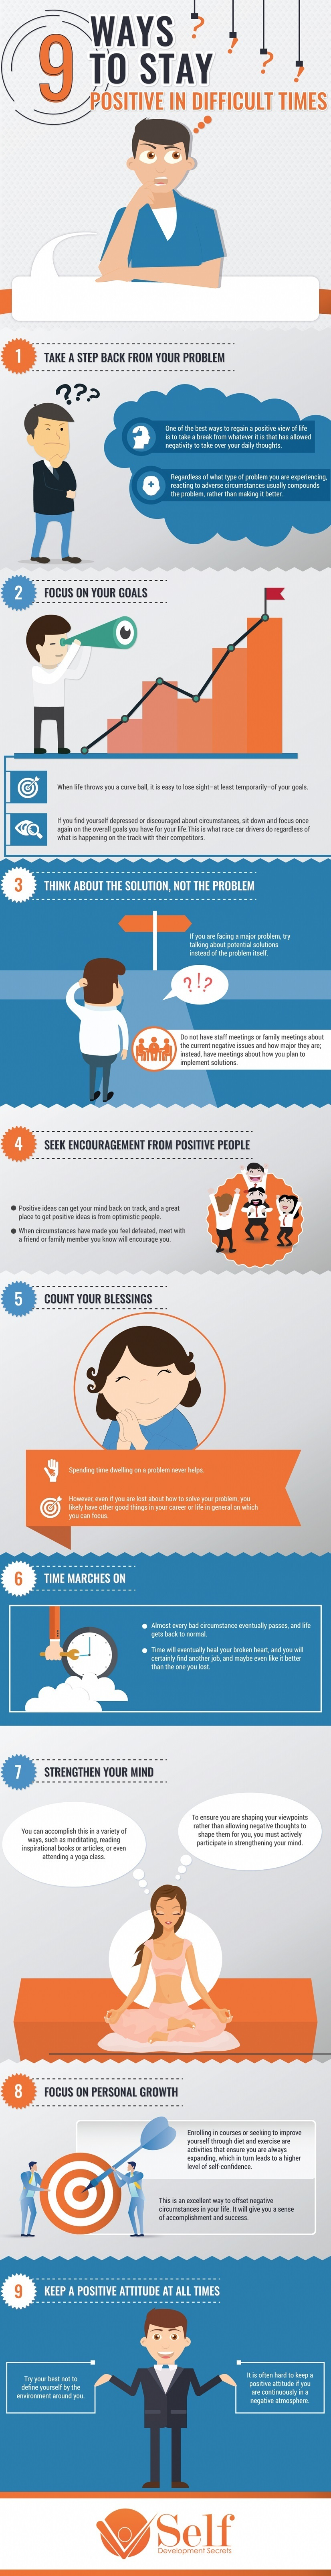 9 Ways To Stay Positive In Difficult Times Infographic